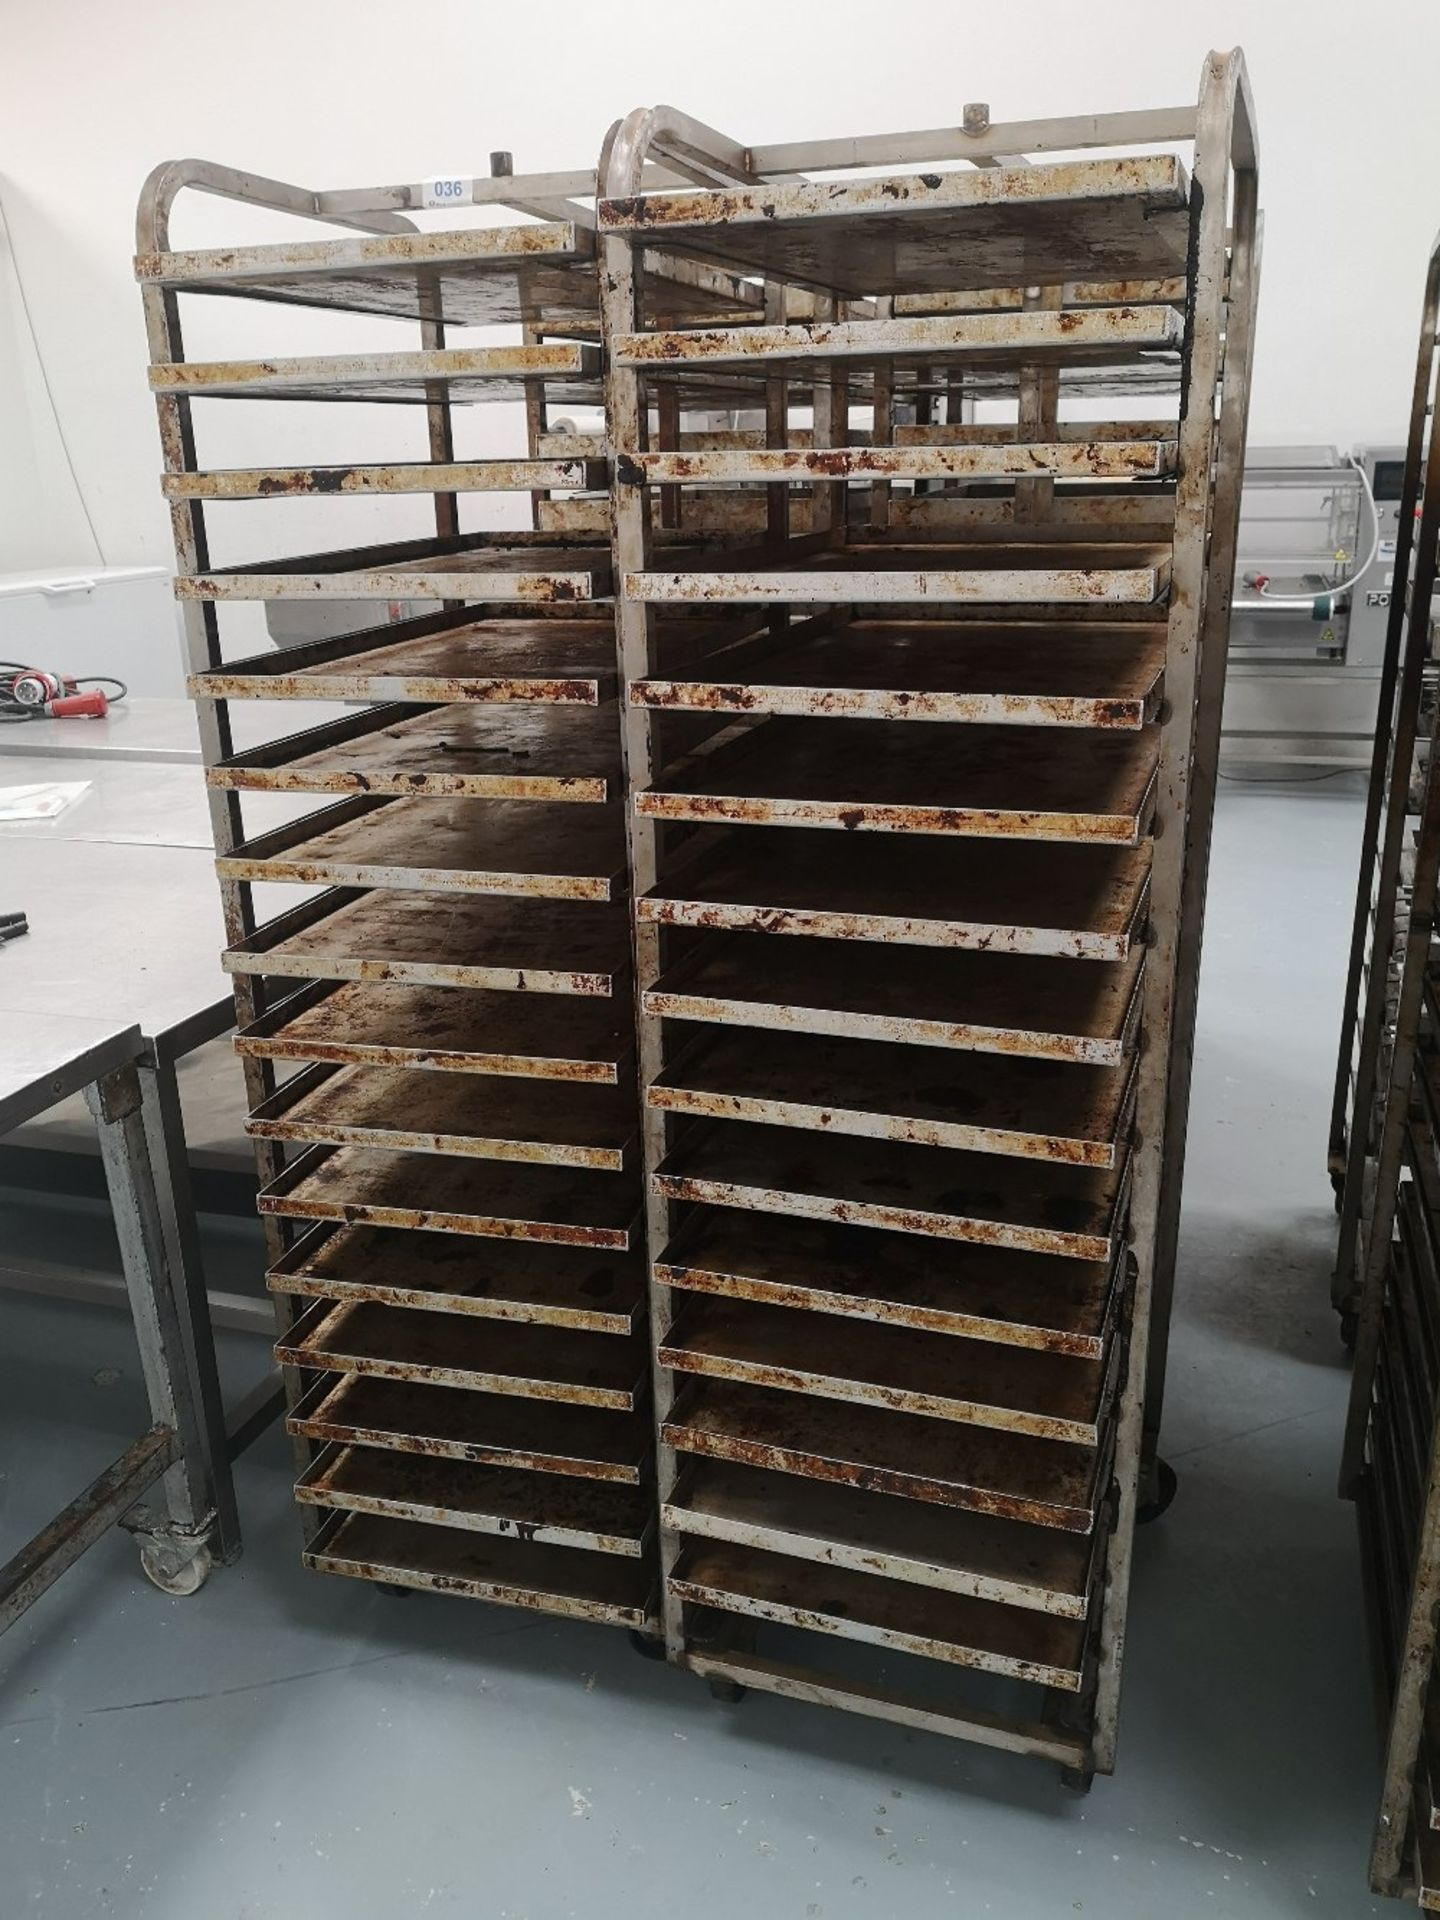 (2) Sixteen Slot Bakery Rack/Tray Stainless Steel Trollies - Image 2 of 3